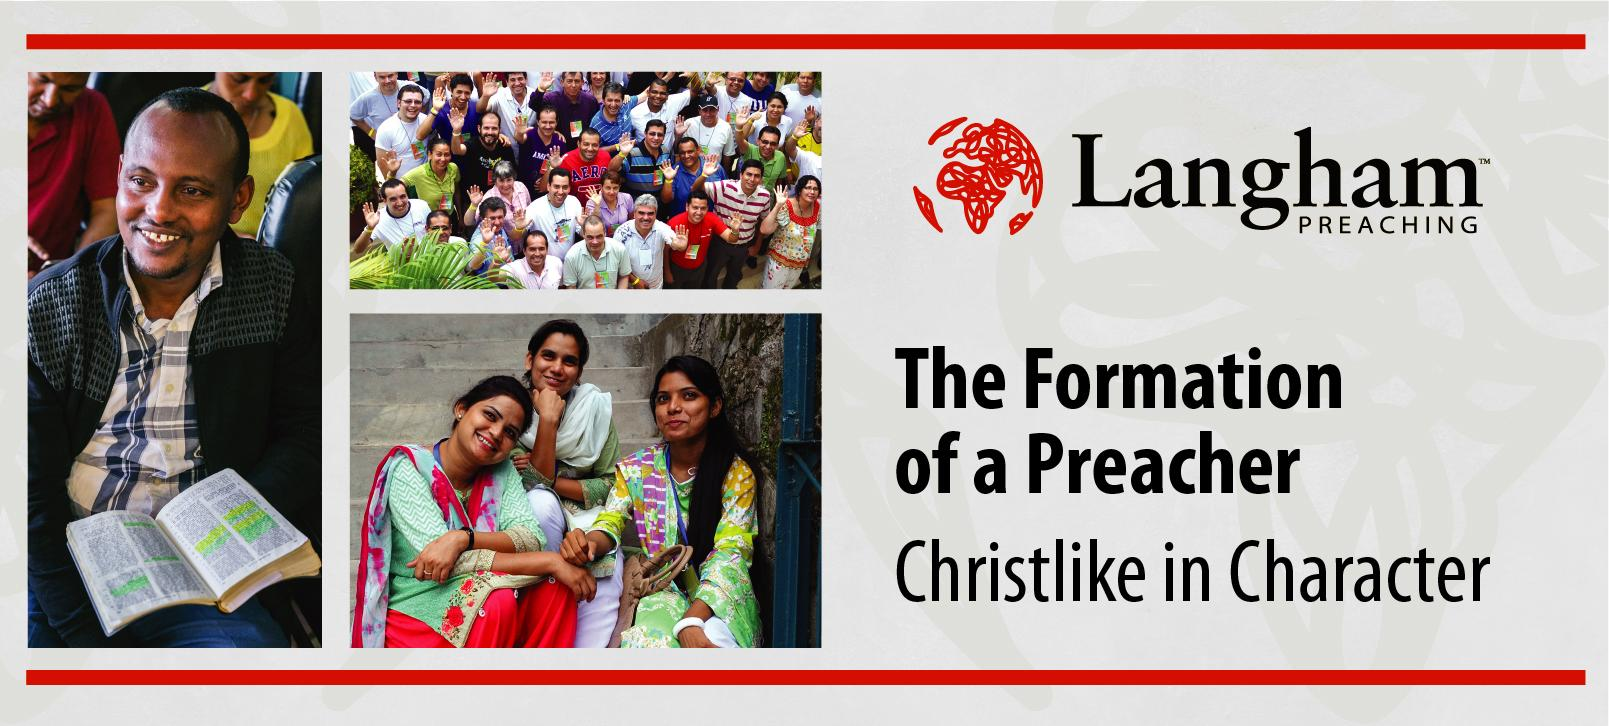 The Formation of a Preacher Part 1: Christlike in Character